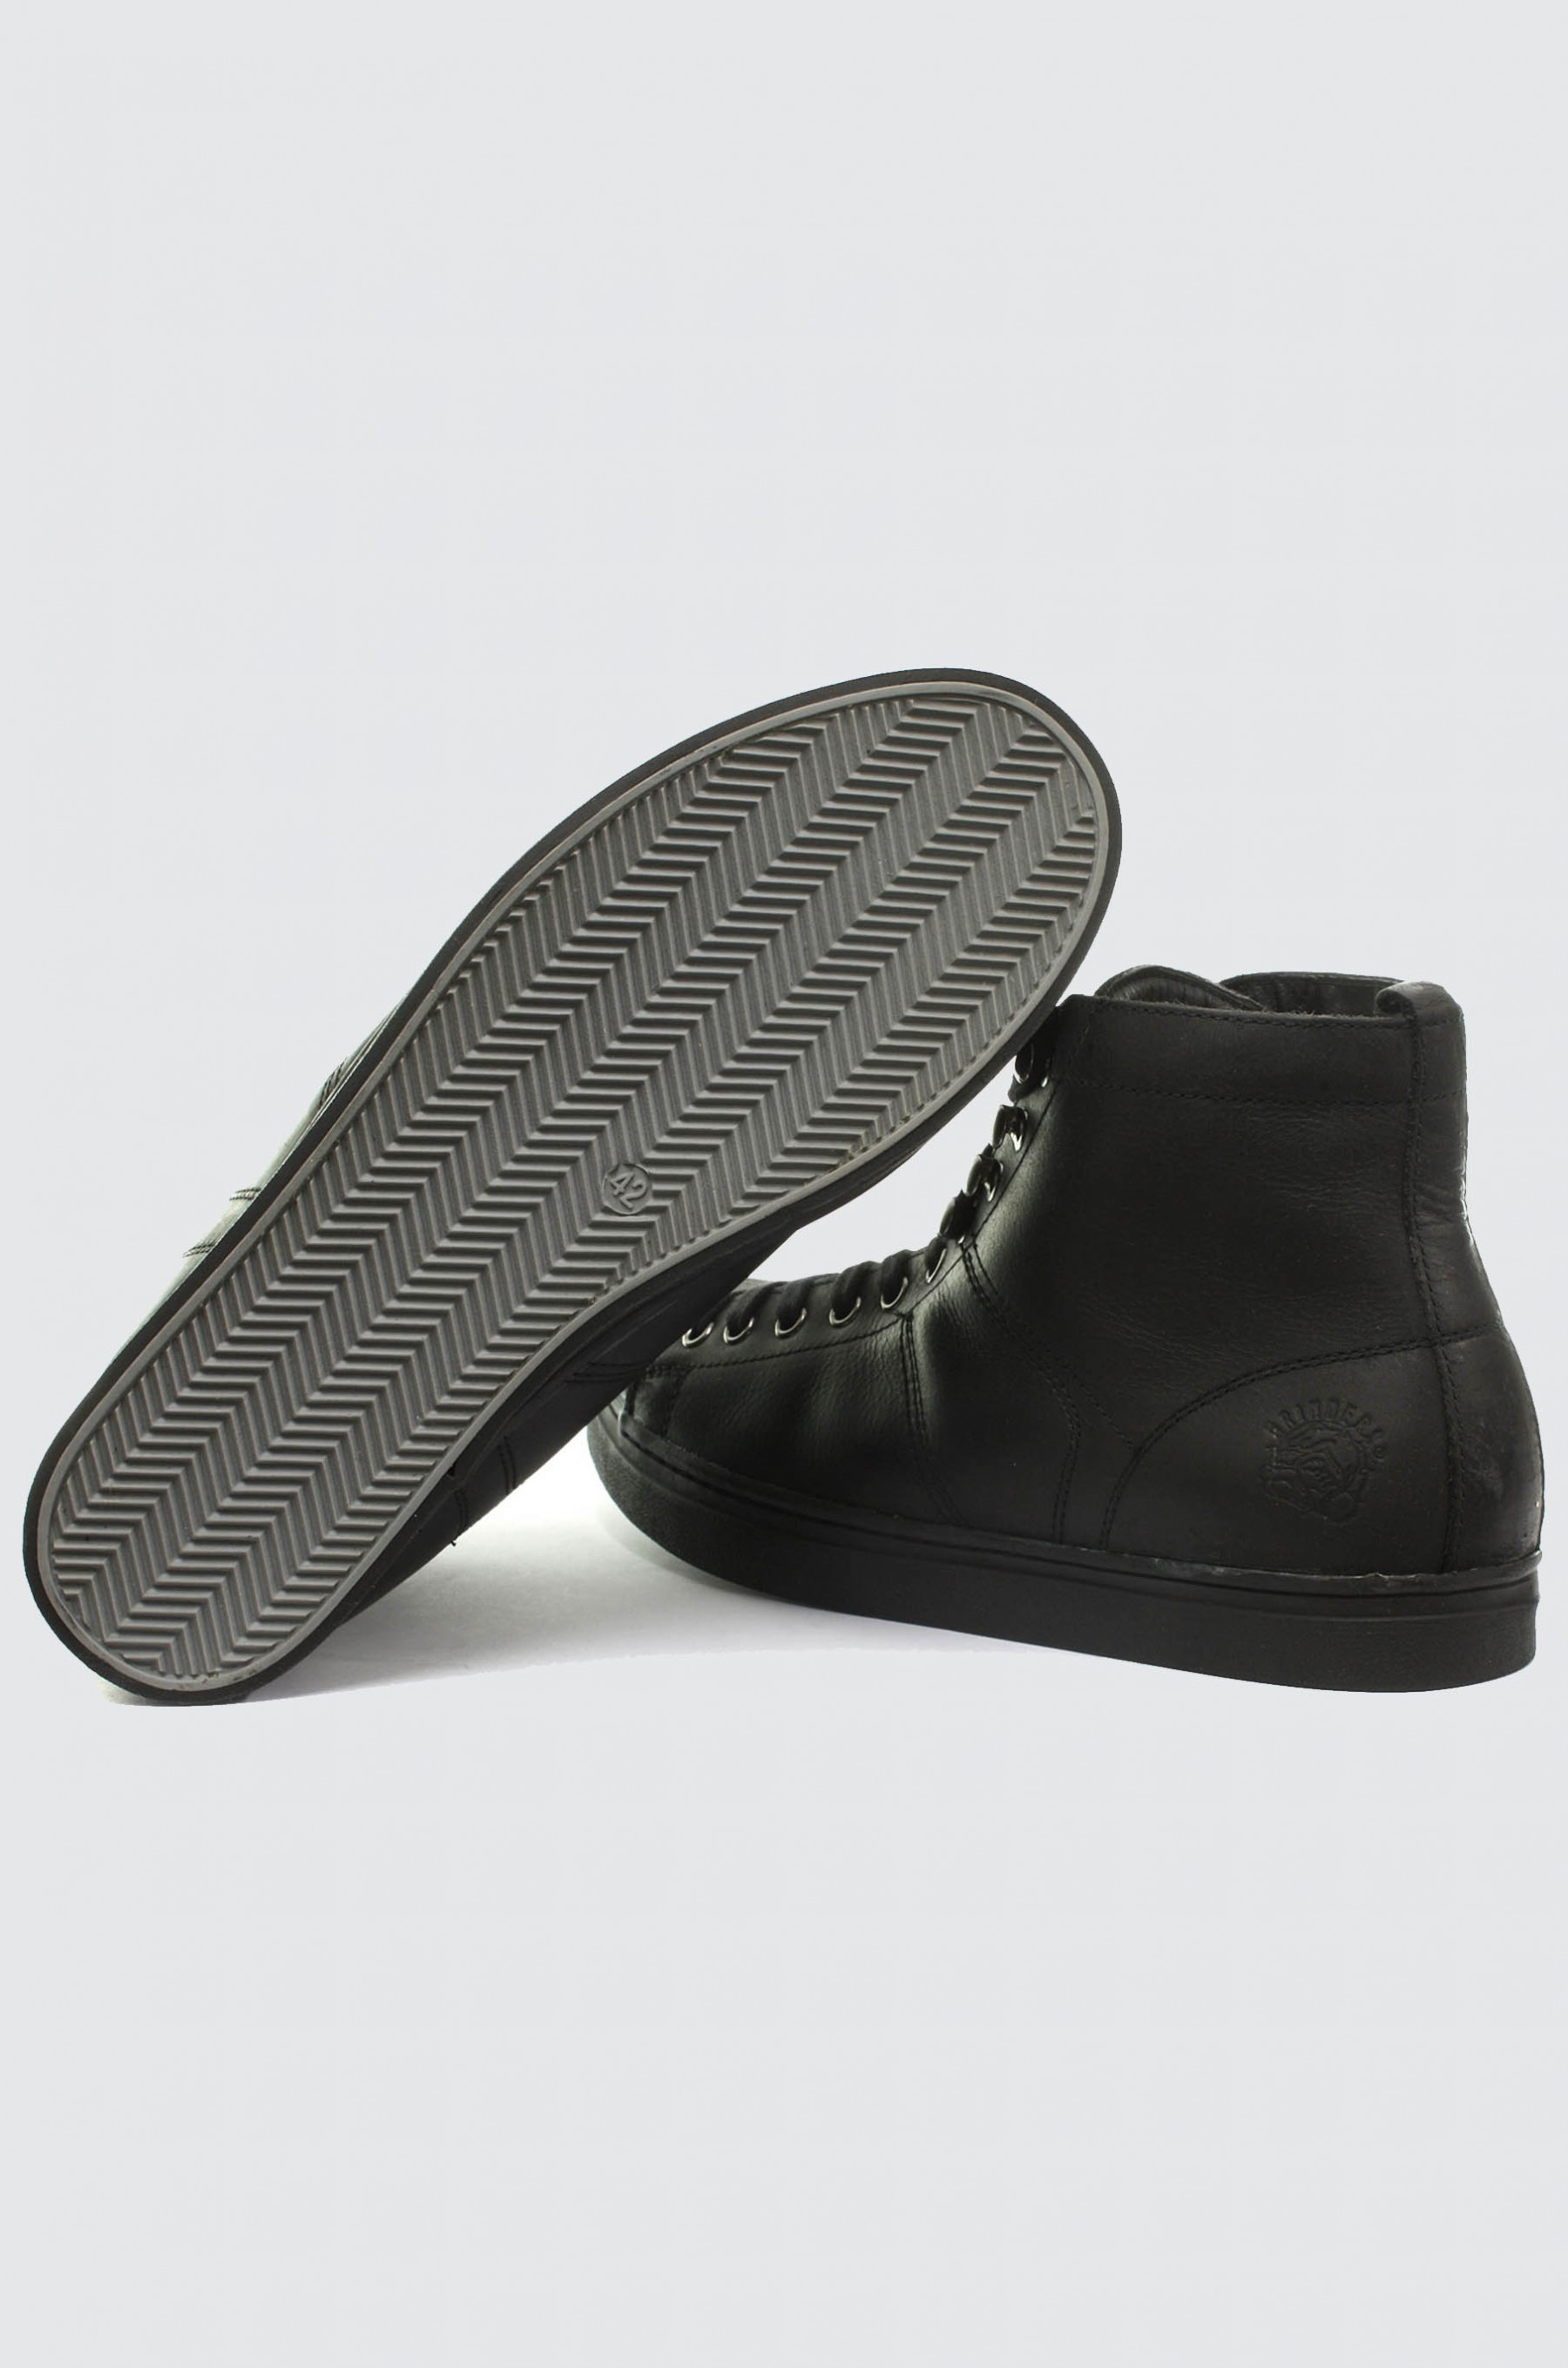 Clothing, Shoes & Accessories New Grinders Max Black Unisex Trainer Style Mid Cut Leather Upper Lace Up Shoe